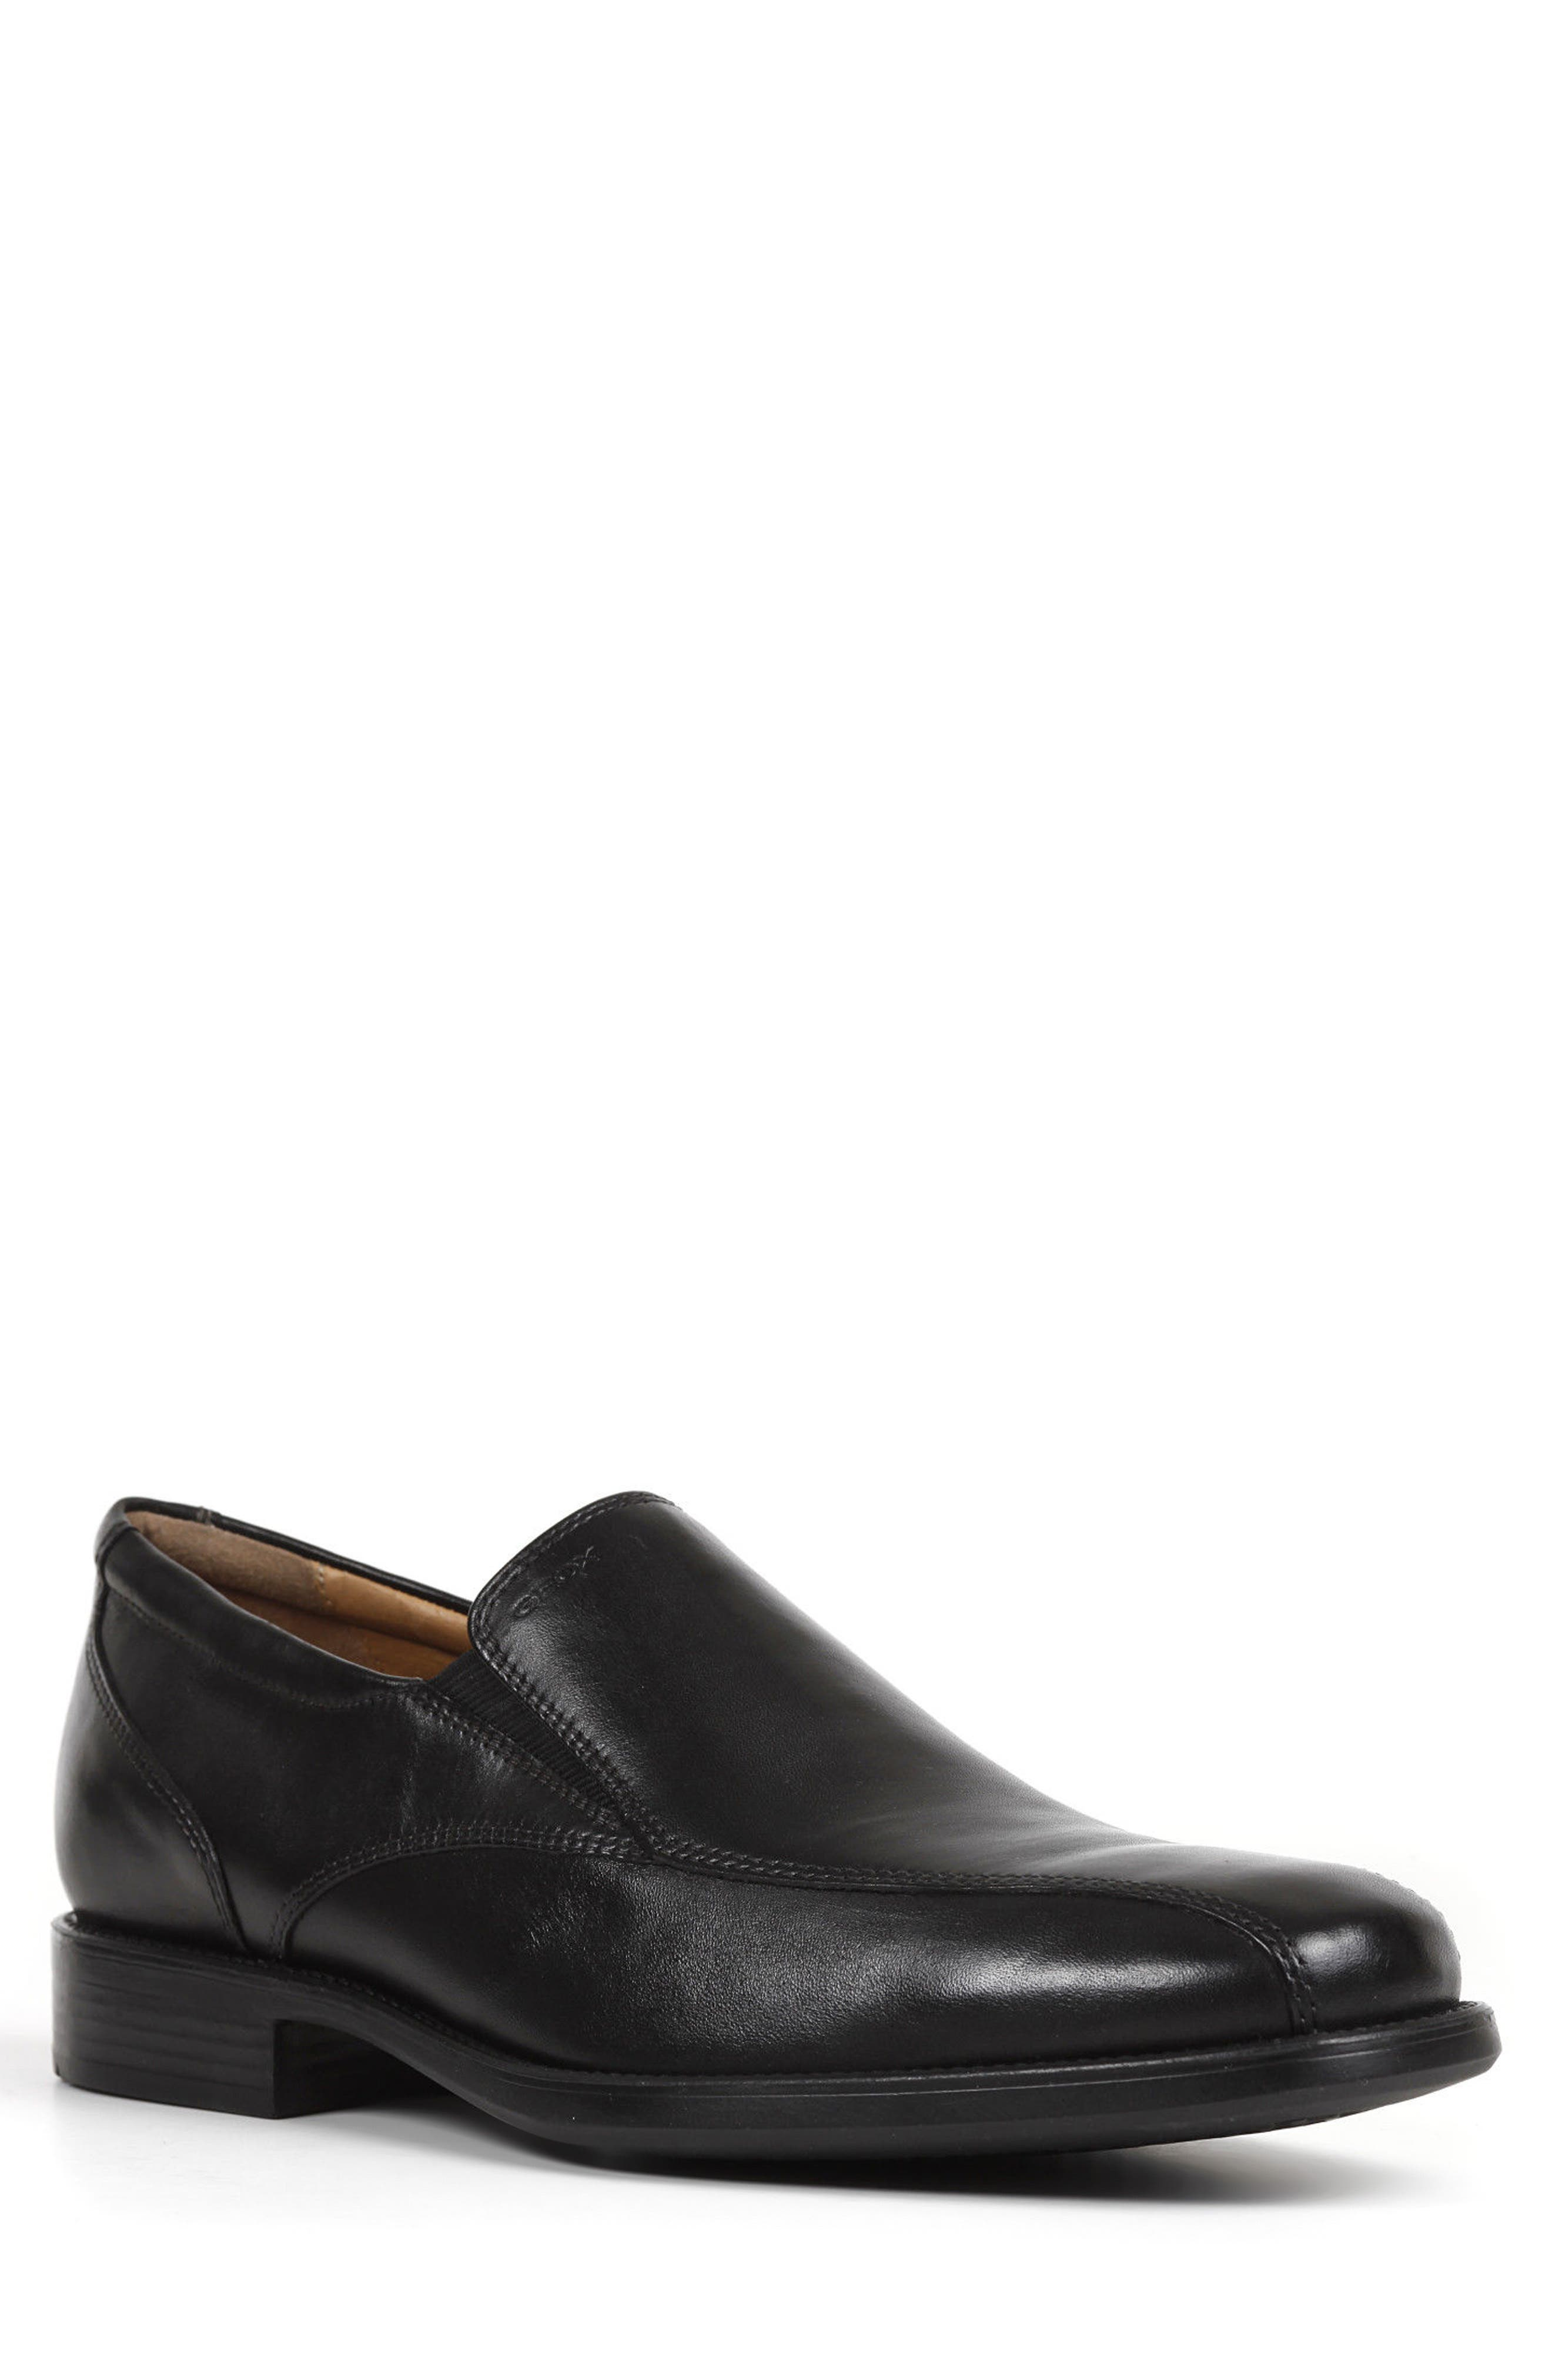 GEOX Federico Venetian Loafer, Main, color, 001